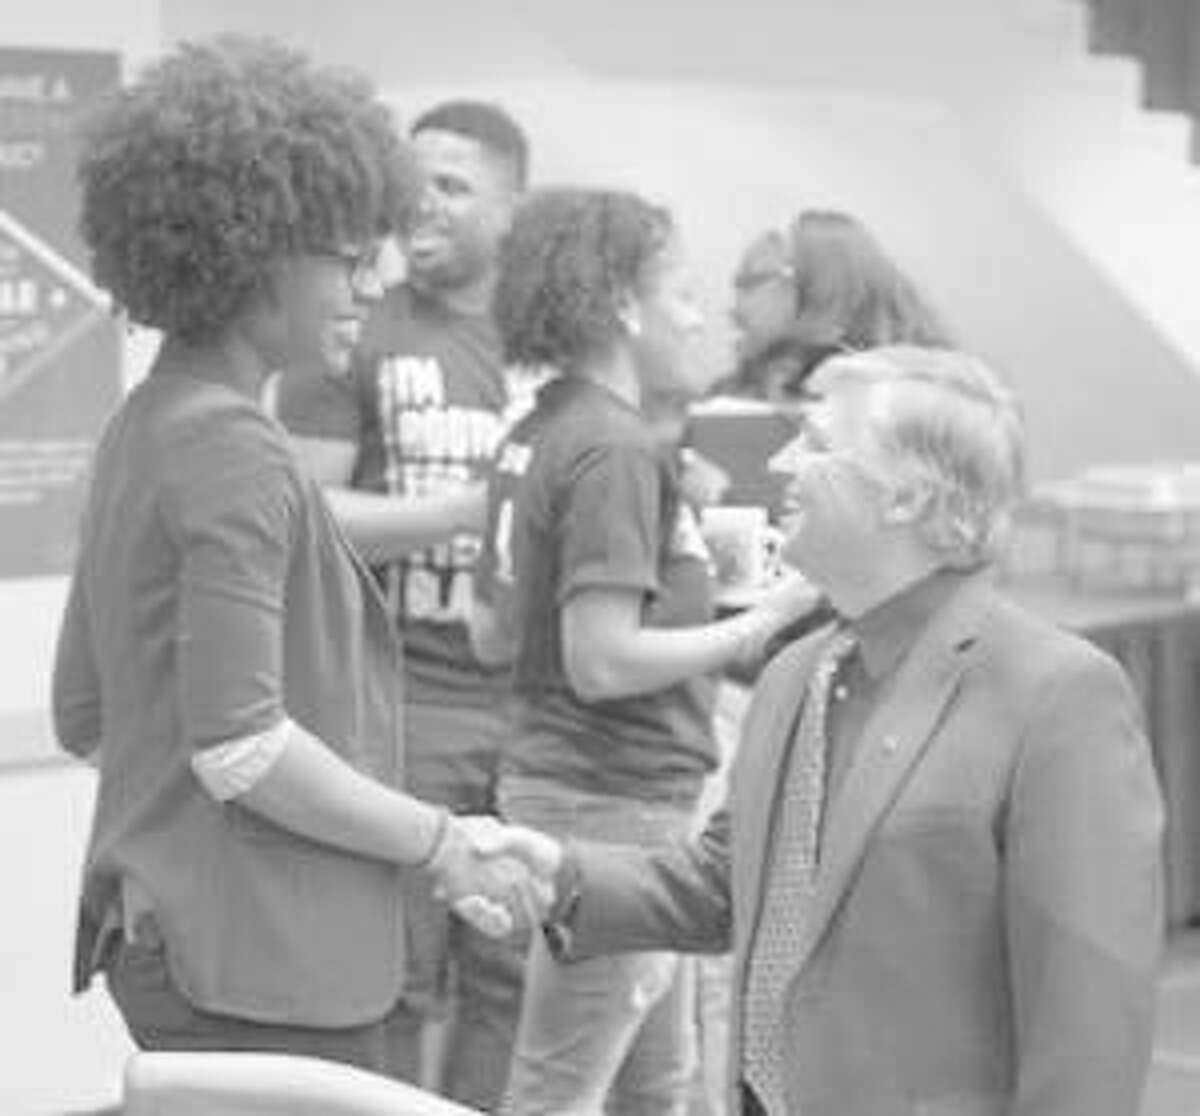 Marissa Williams, SIUE Black Heritage Month chair, welcomes SIUE Chancellor Randy Pembrook to the SIUE Black Heritage Month Opening Ceremony.